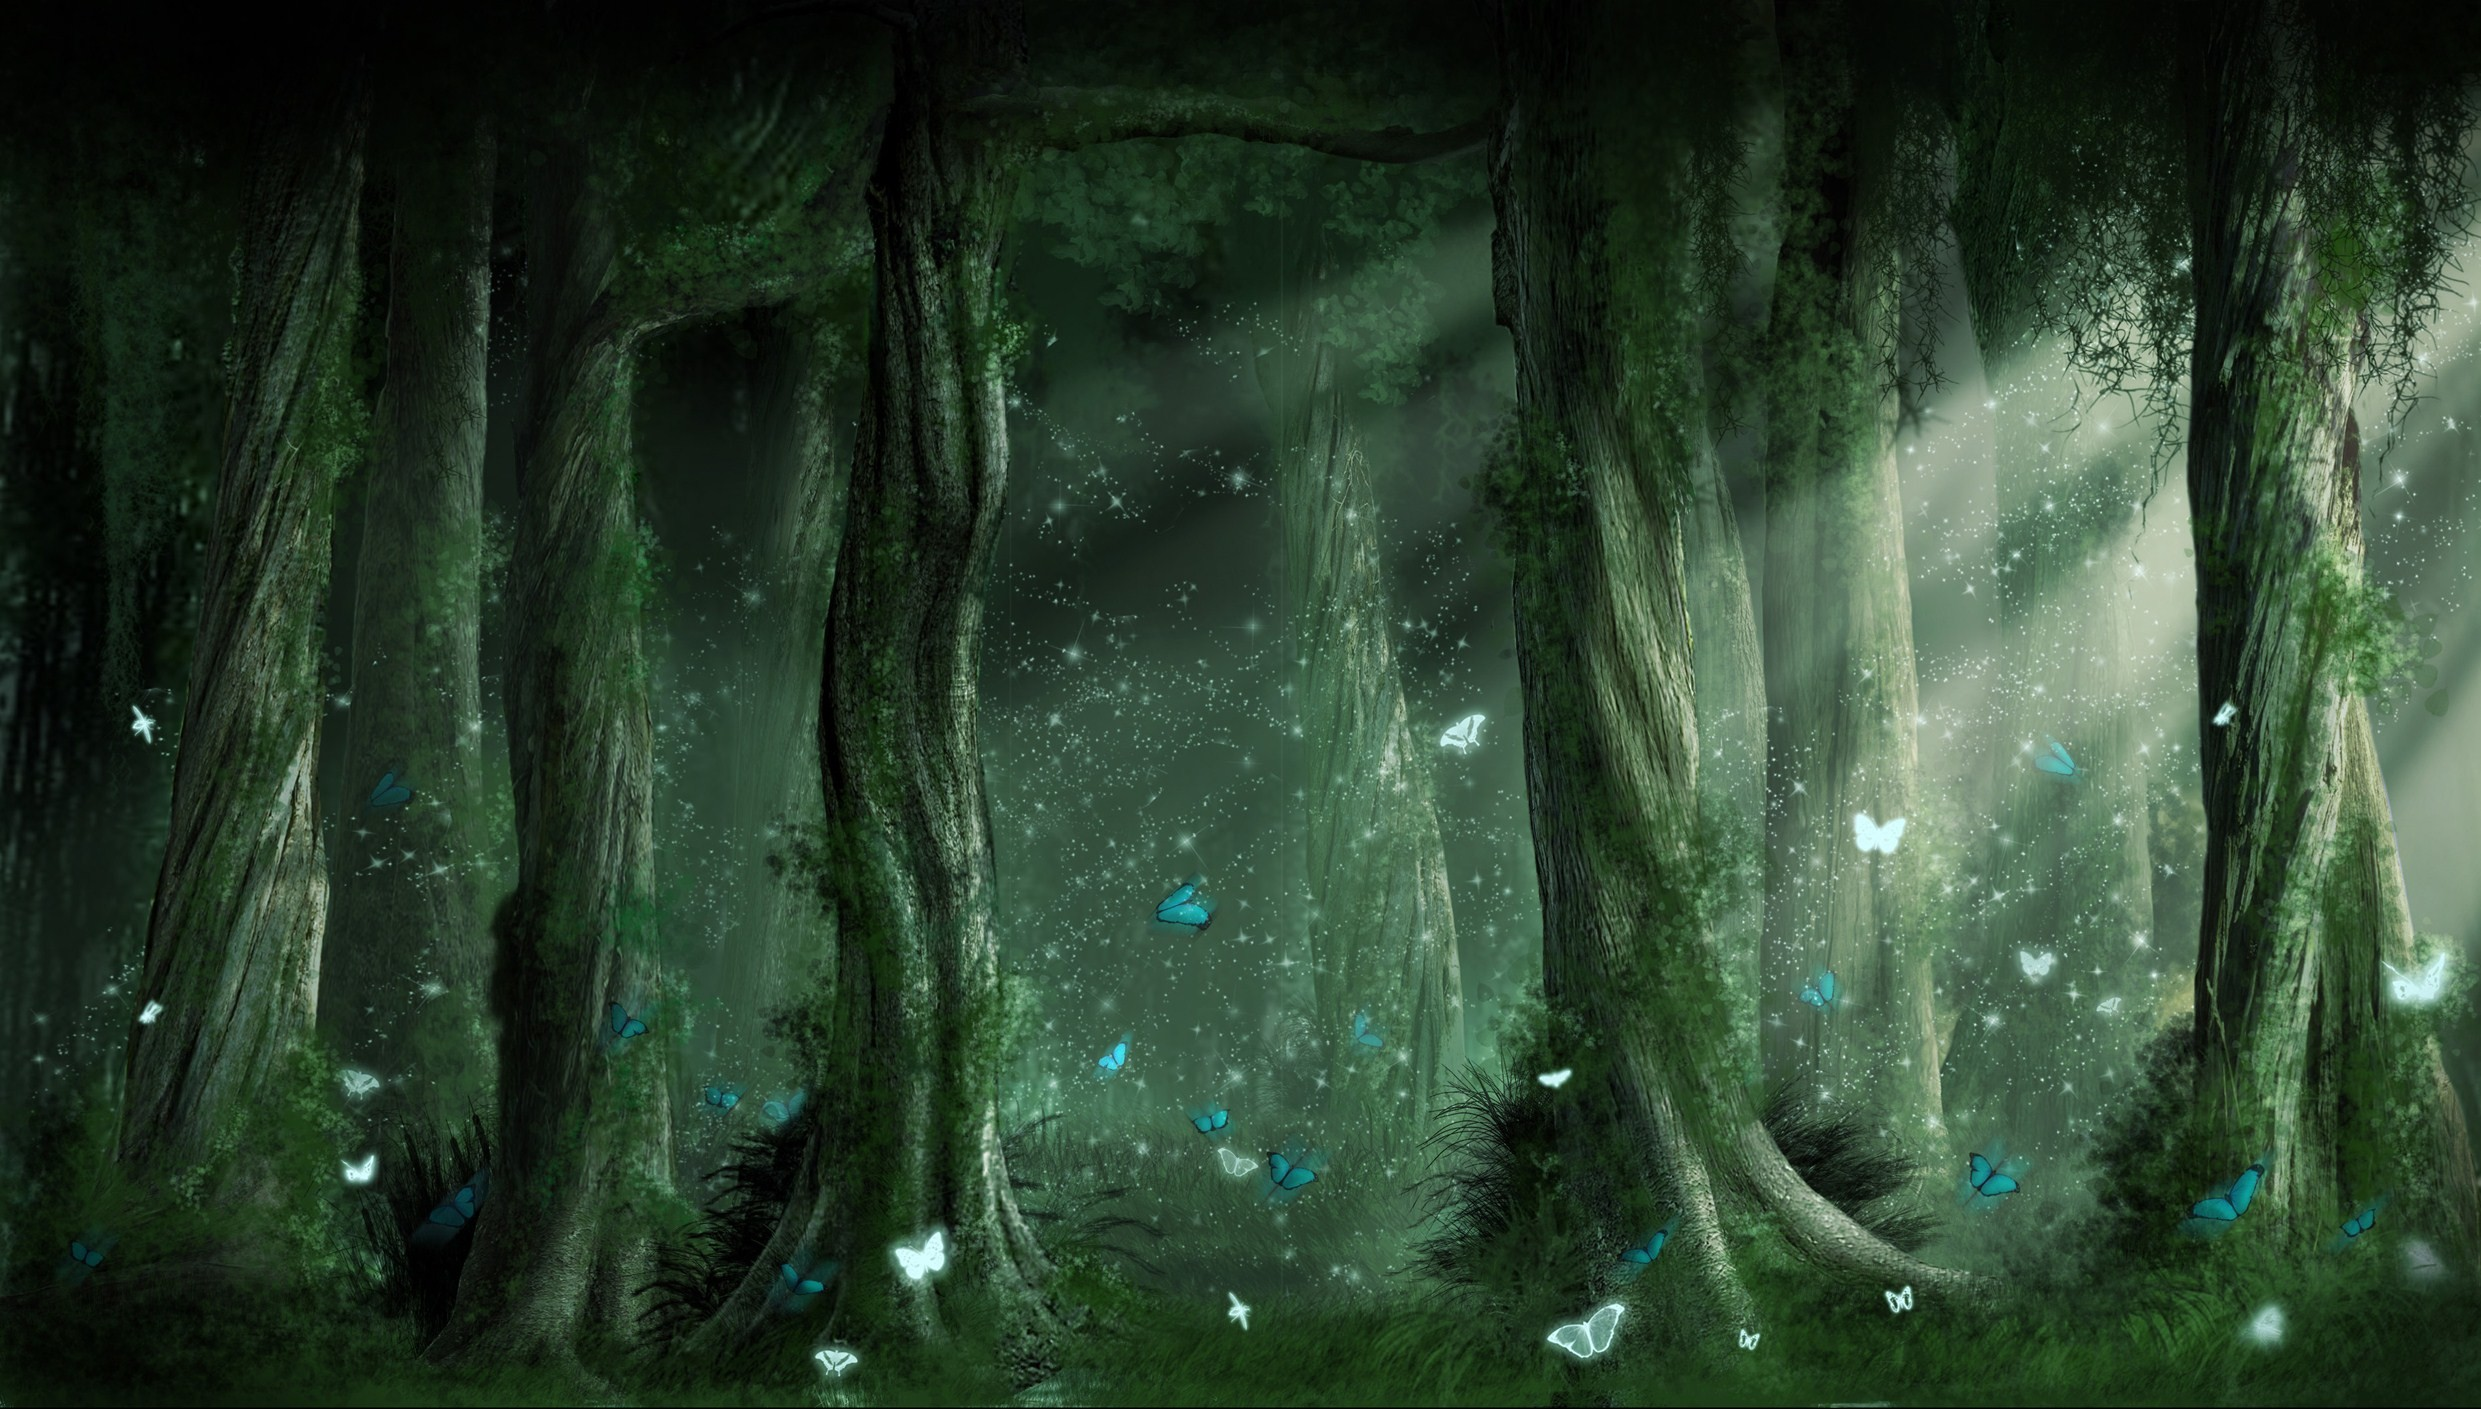 2481x1409 Fantasy Forest Backgrounds | Fantasy - Forest Wallpaper